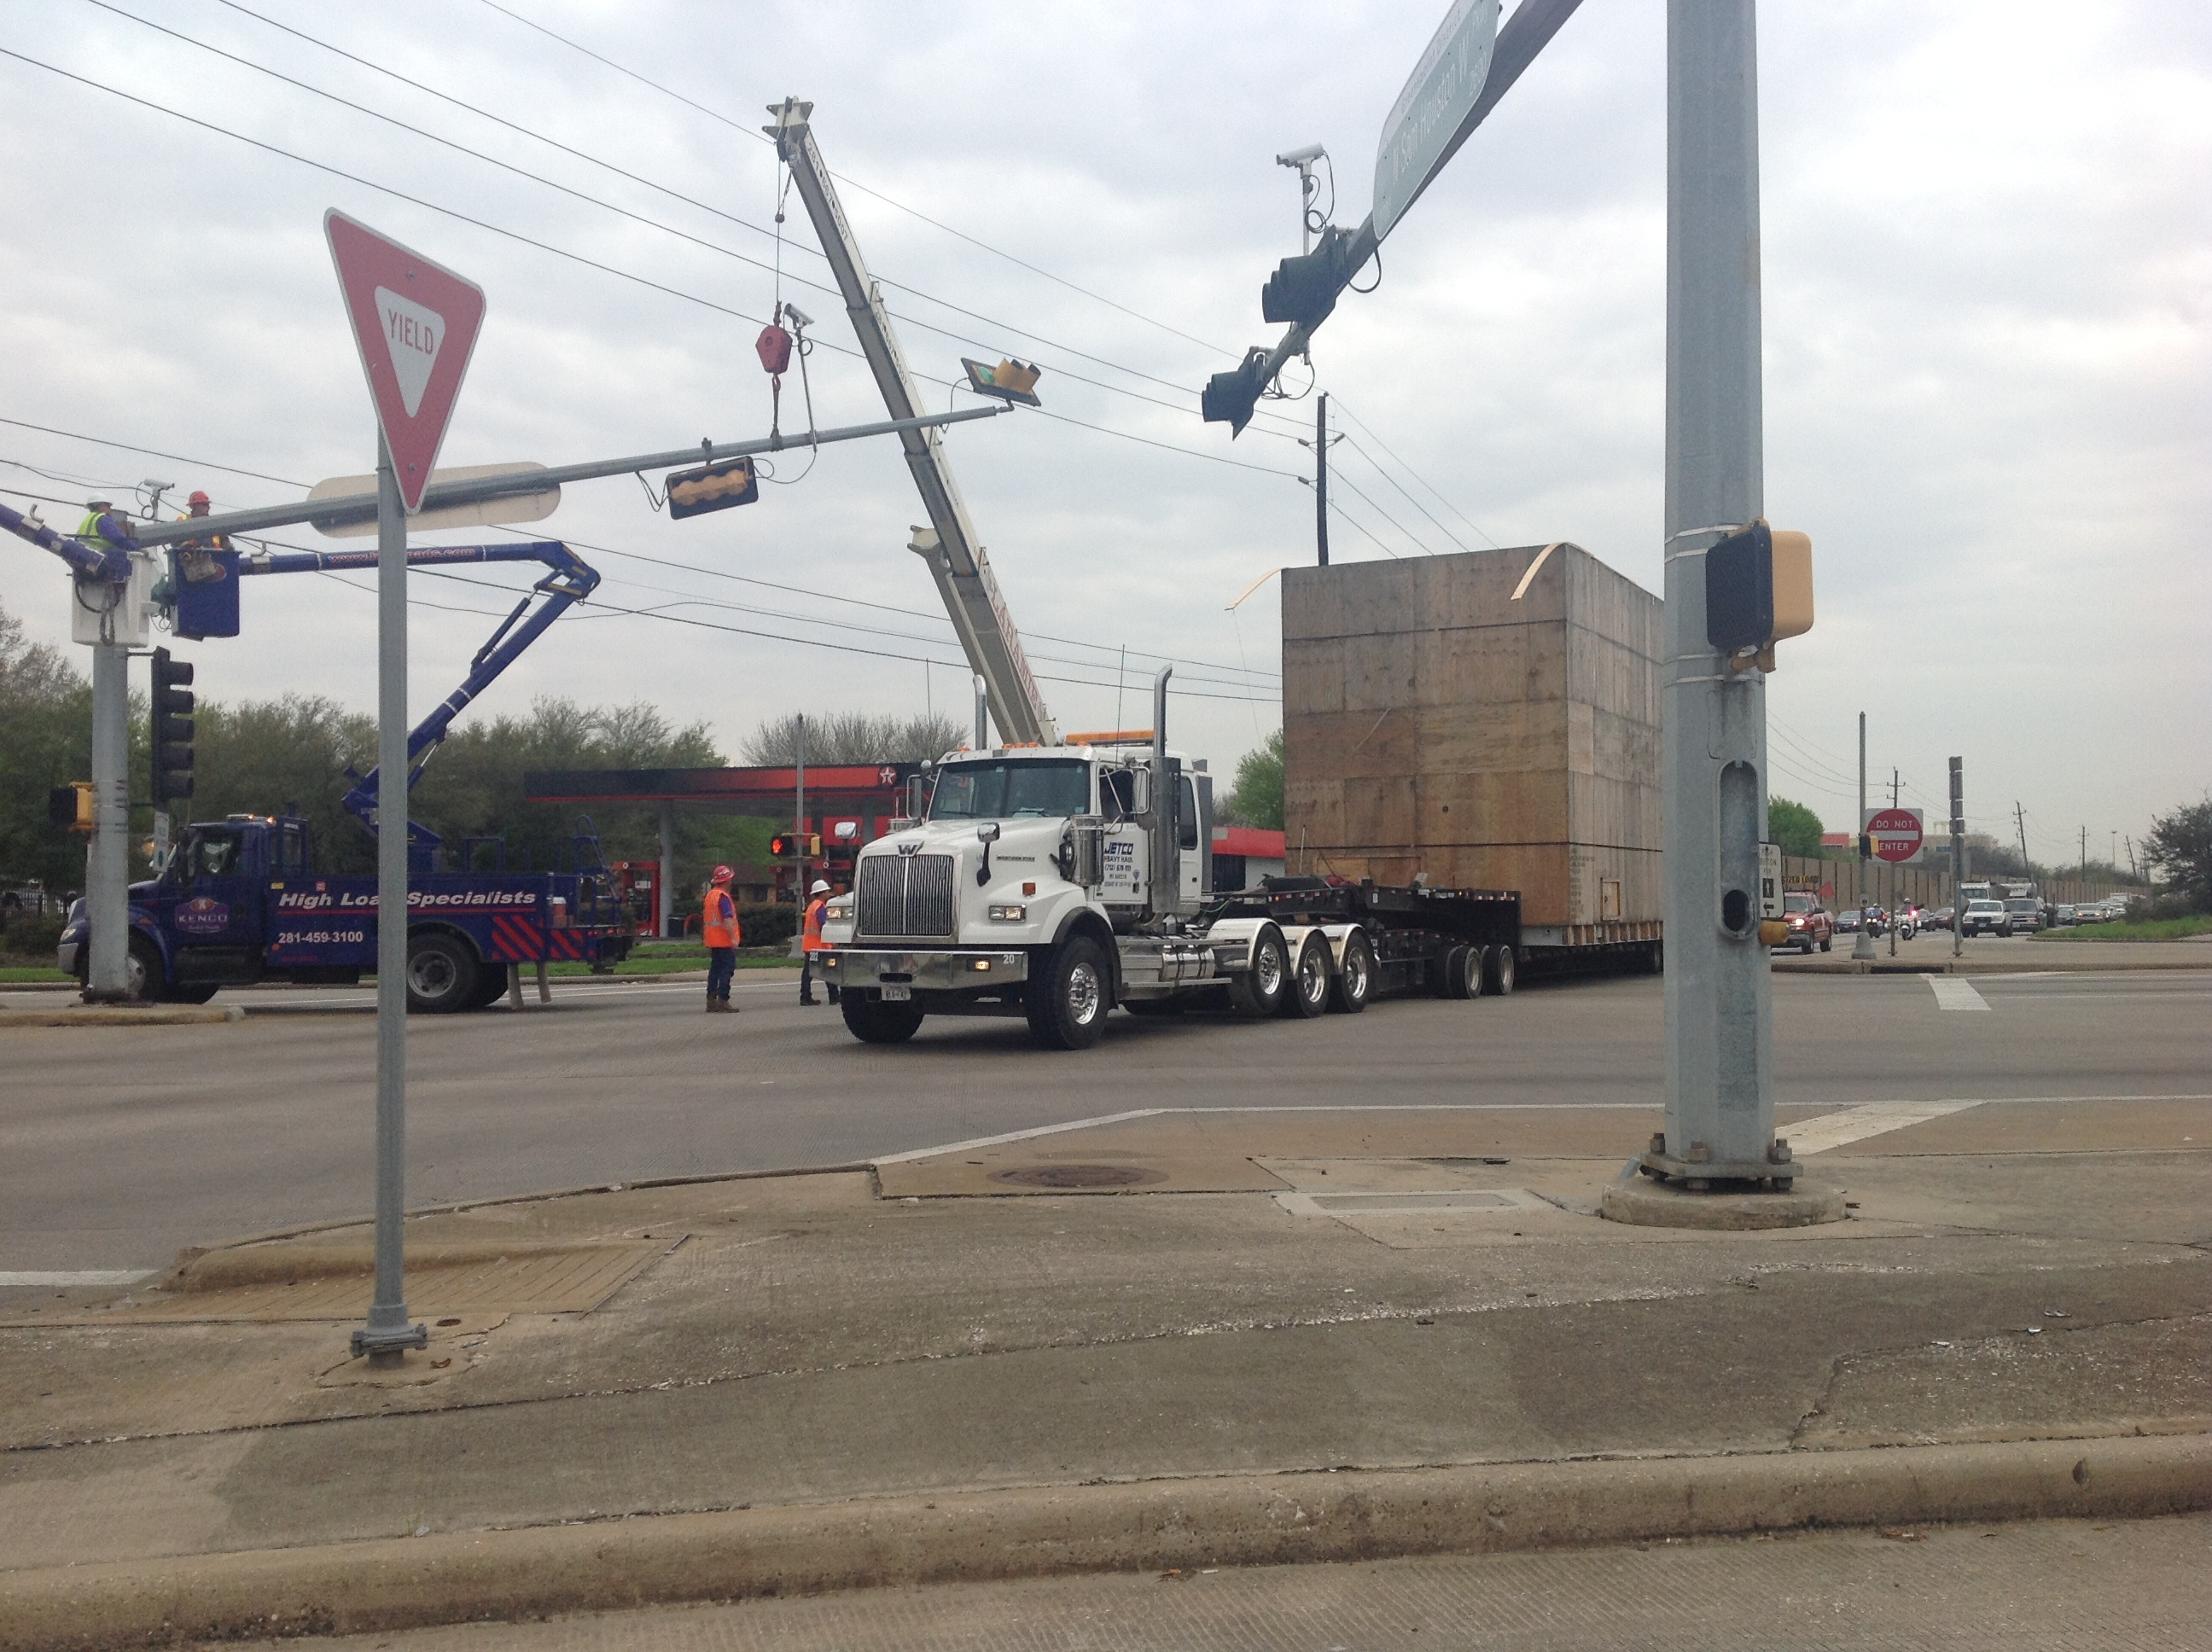 Breaking News! New Bucket Truck Regulations for High Loads in Houston District.